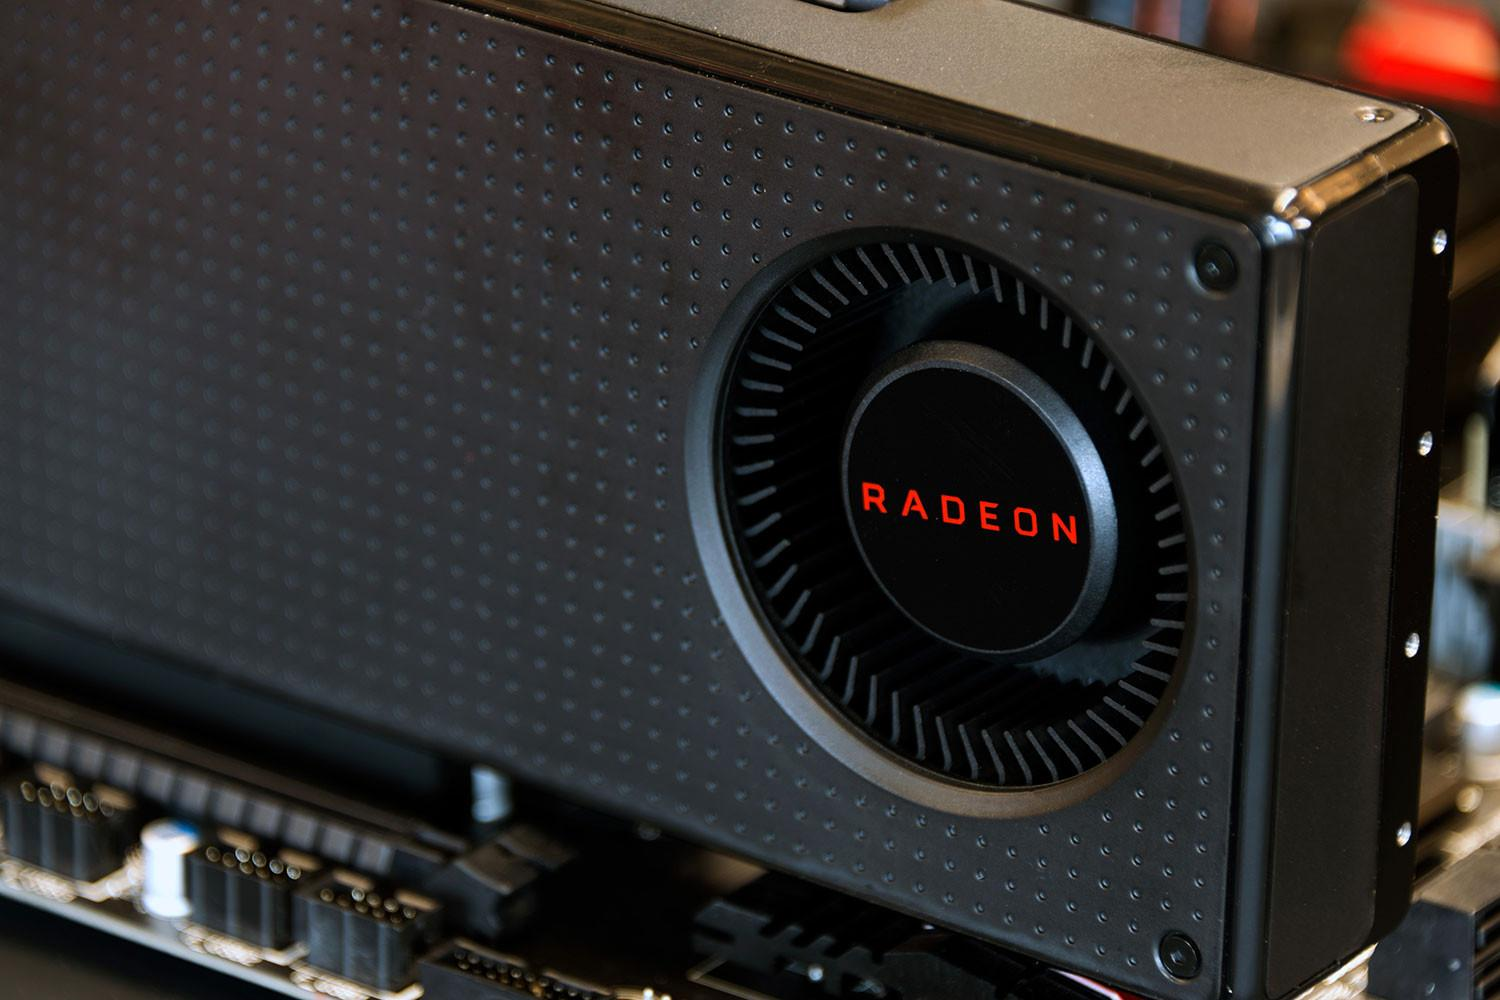 Some AMD Radeon RX 480 cards sold as 4GB models actually have 8GB of